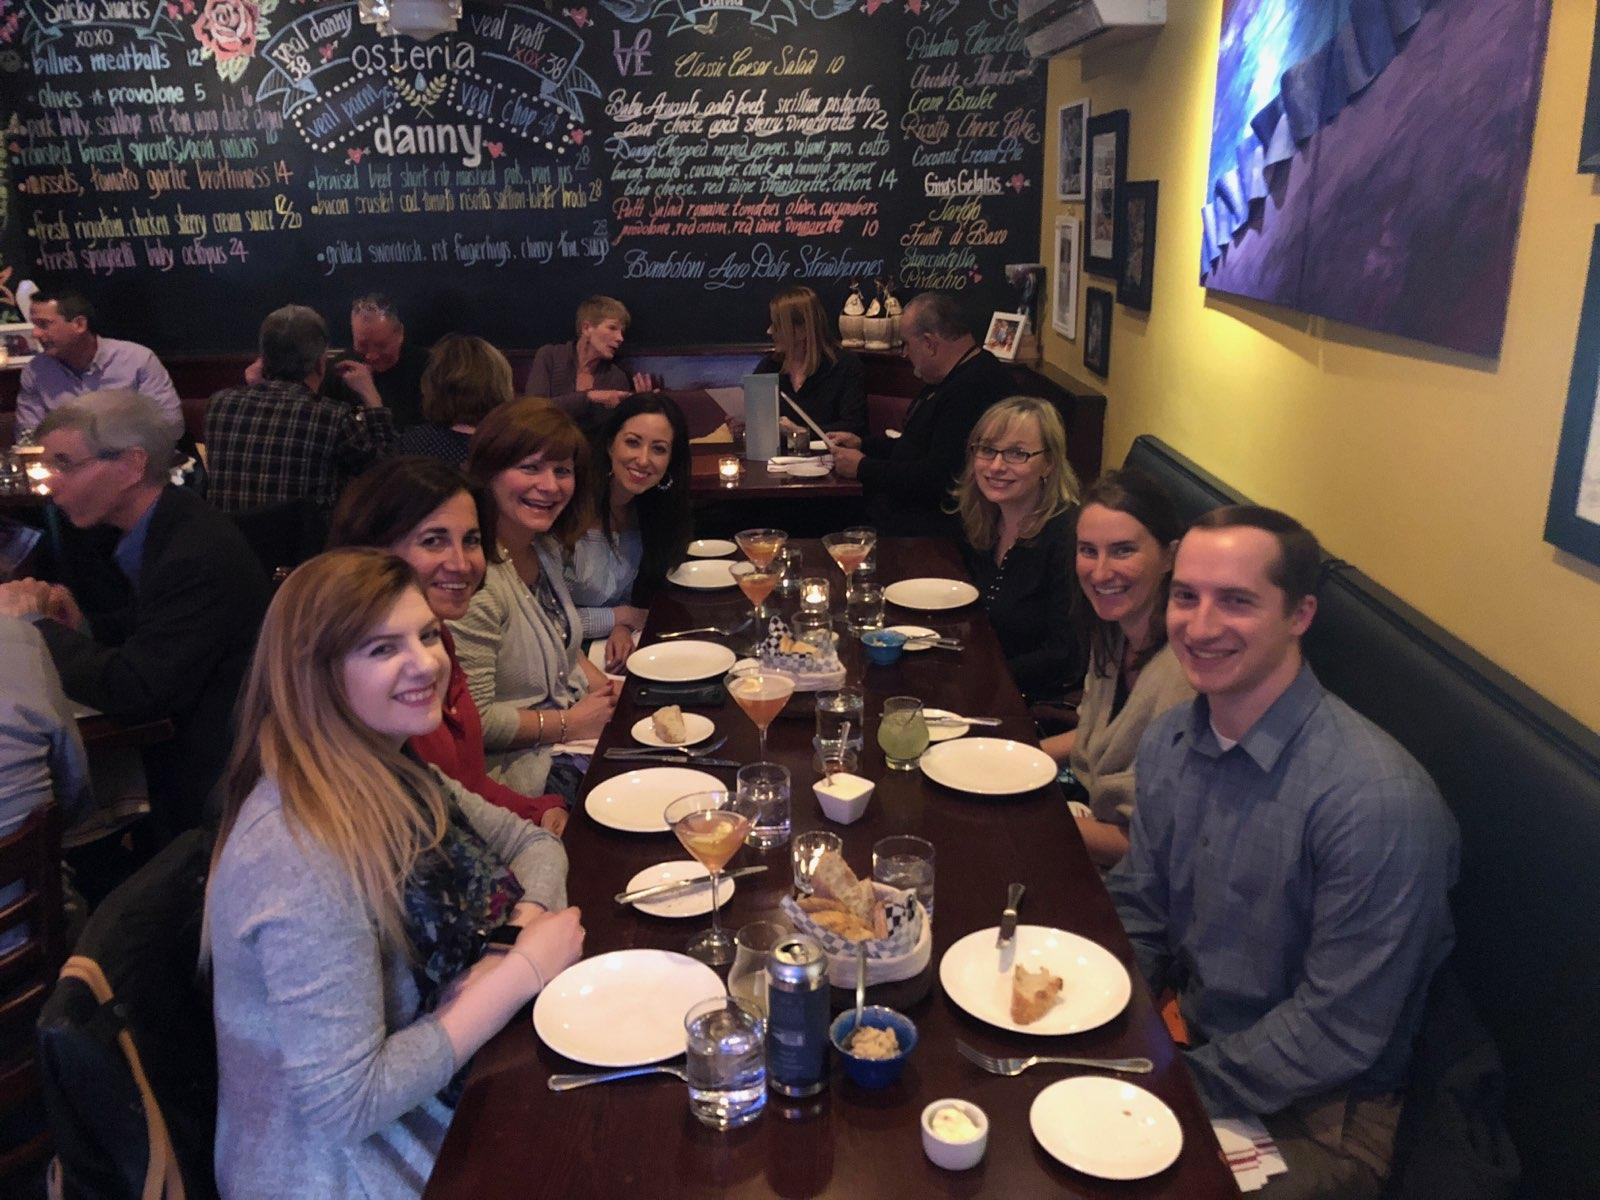 Sparkshoppe digital marketing team out to dinner at Osteria Danny in Saratoga Springs, New York